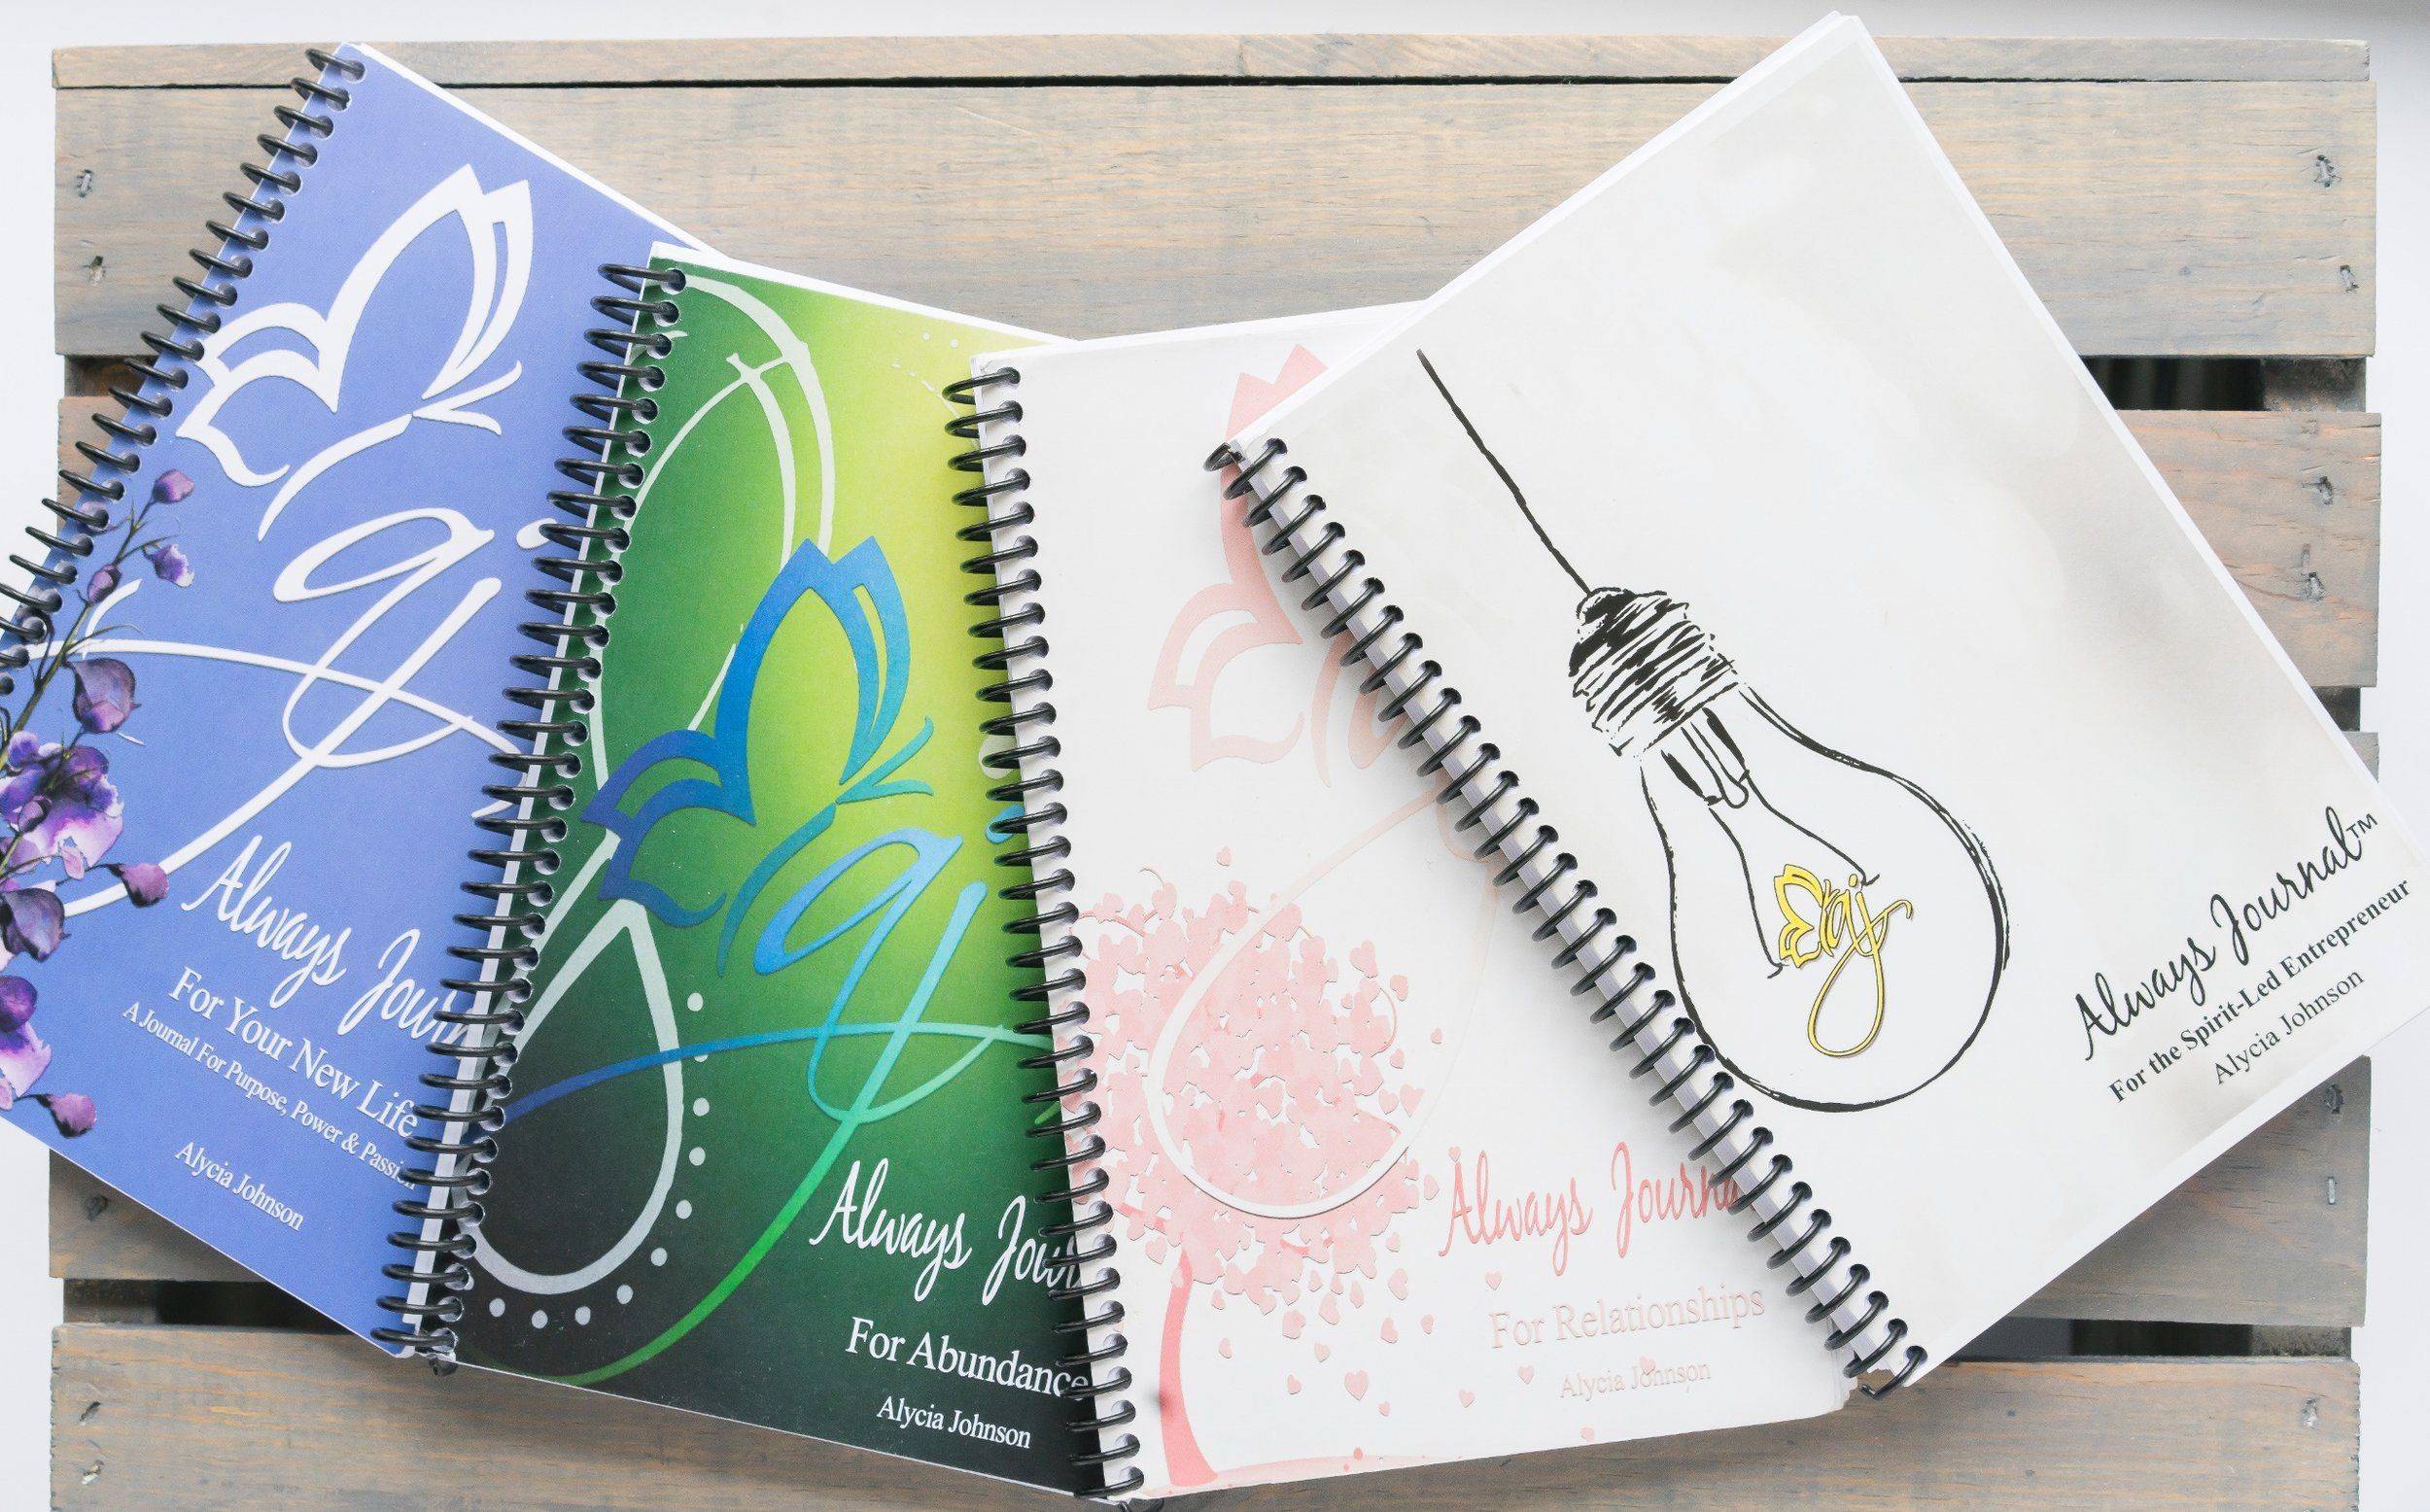 Full Circle - $149 - If you love, love, love community and Always Journal, then this package is for you. Leveling up to Full Circle Memberships enables you to immerse yourself in all things Always Journal. This program offers you the best of both worlds. This package includes the current journal challenge, 5AM ZOOM call, monthly workshop, a complete archive of all previous challenges, monthly book club, AJ365 accountability group, AJ365 Lifepath Community and discounts on AJ365 Intensives. Register here to get started https://sowl.co/HGaYO.